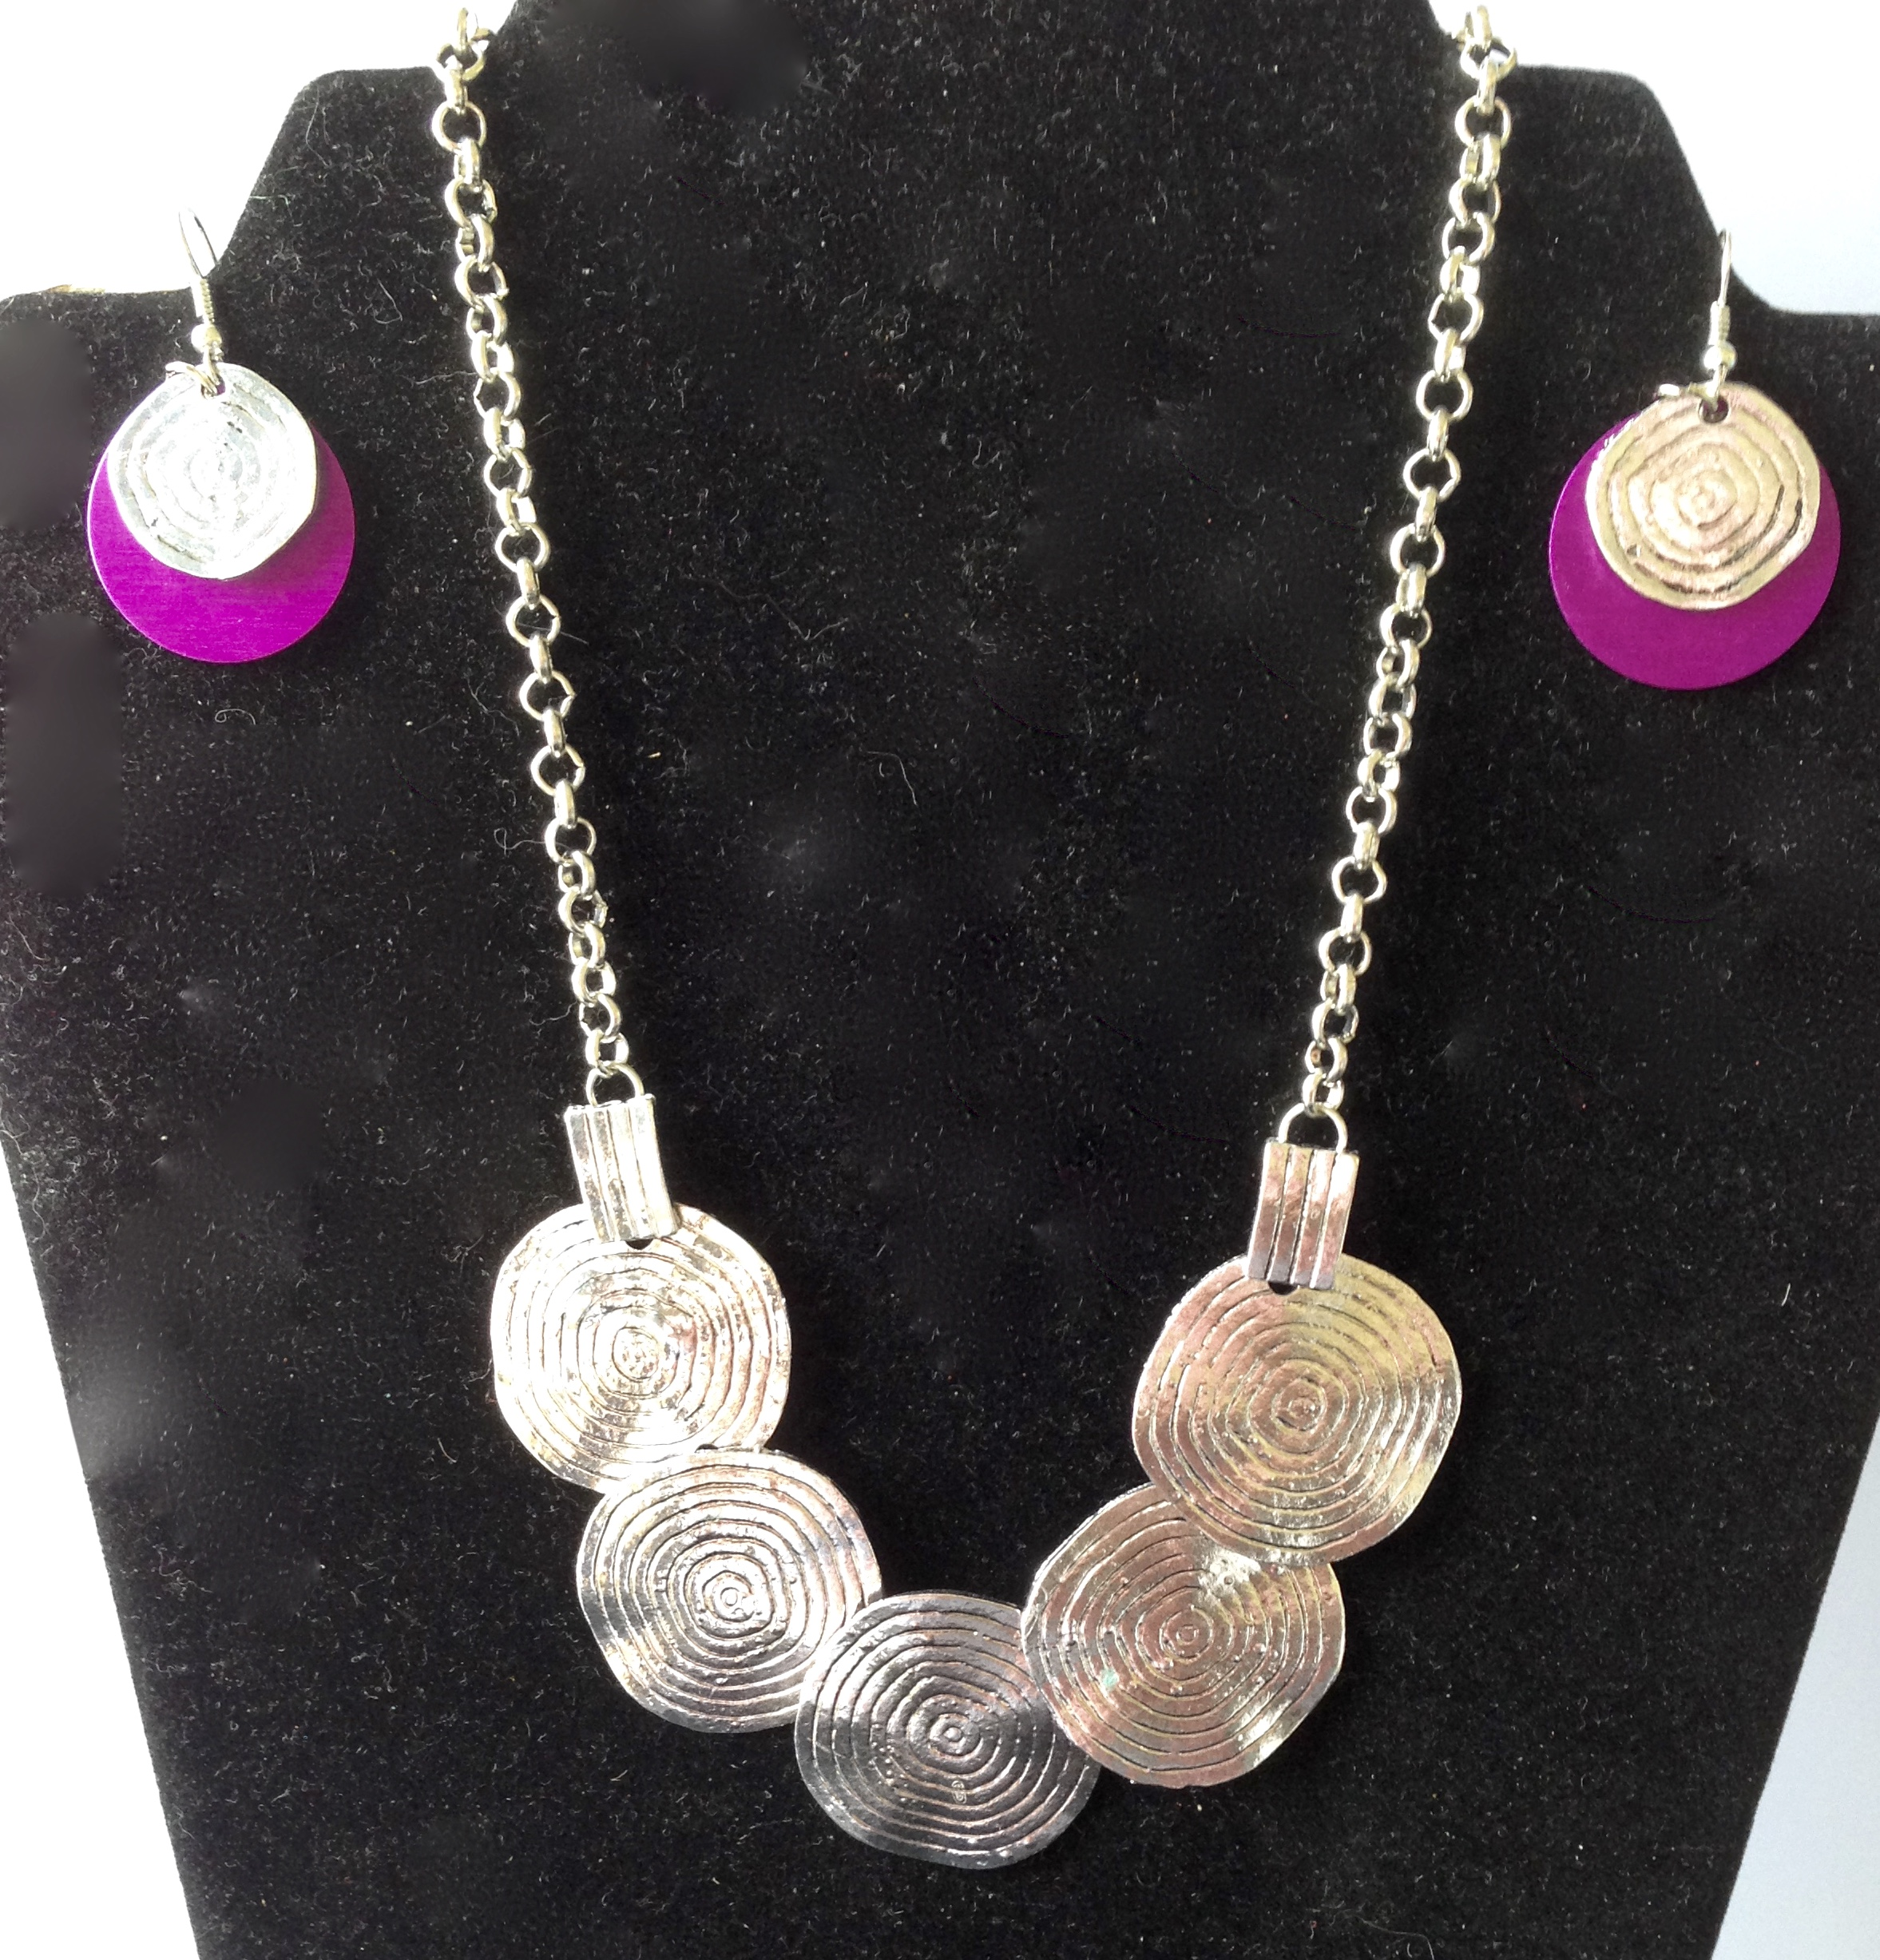 Silver Disks Necklace and Earrings Set